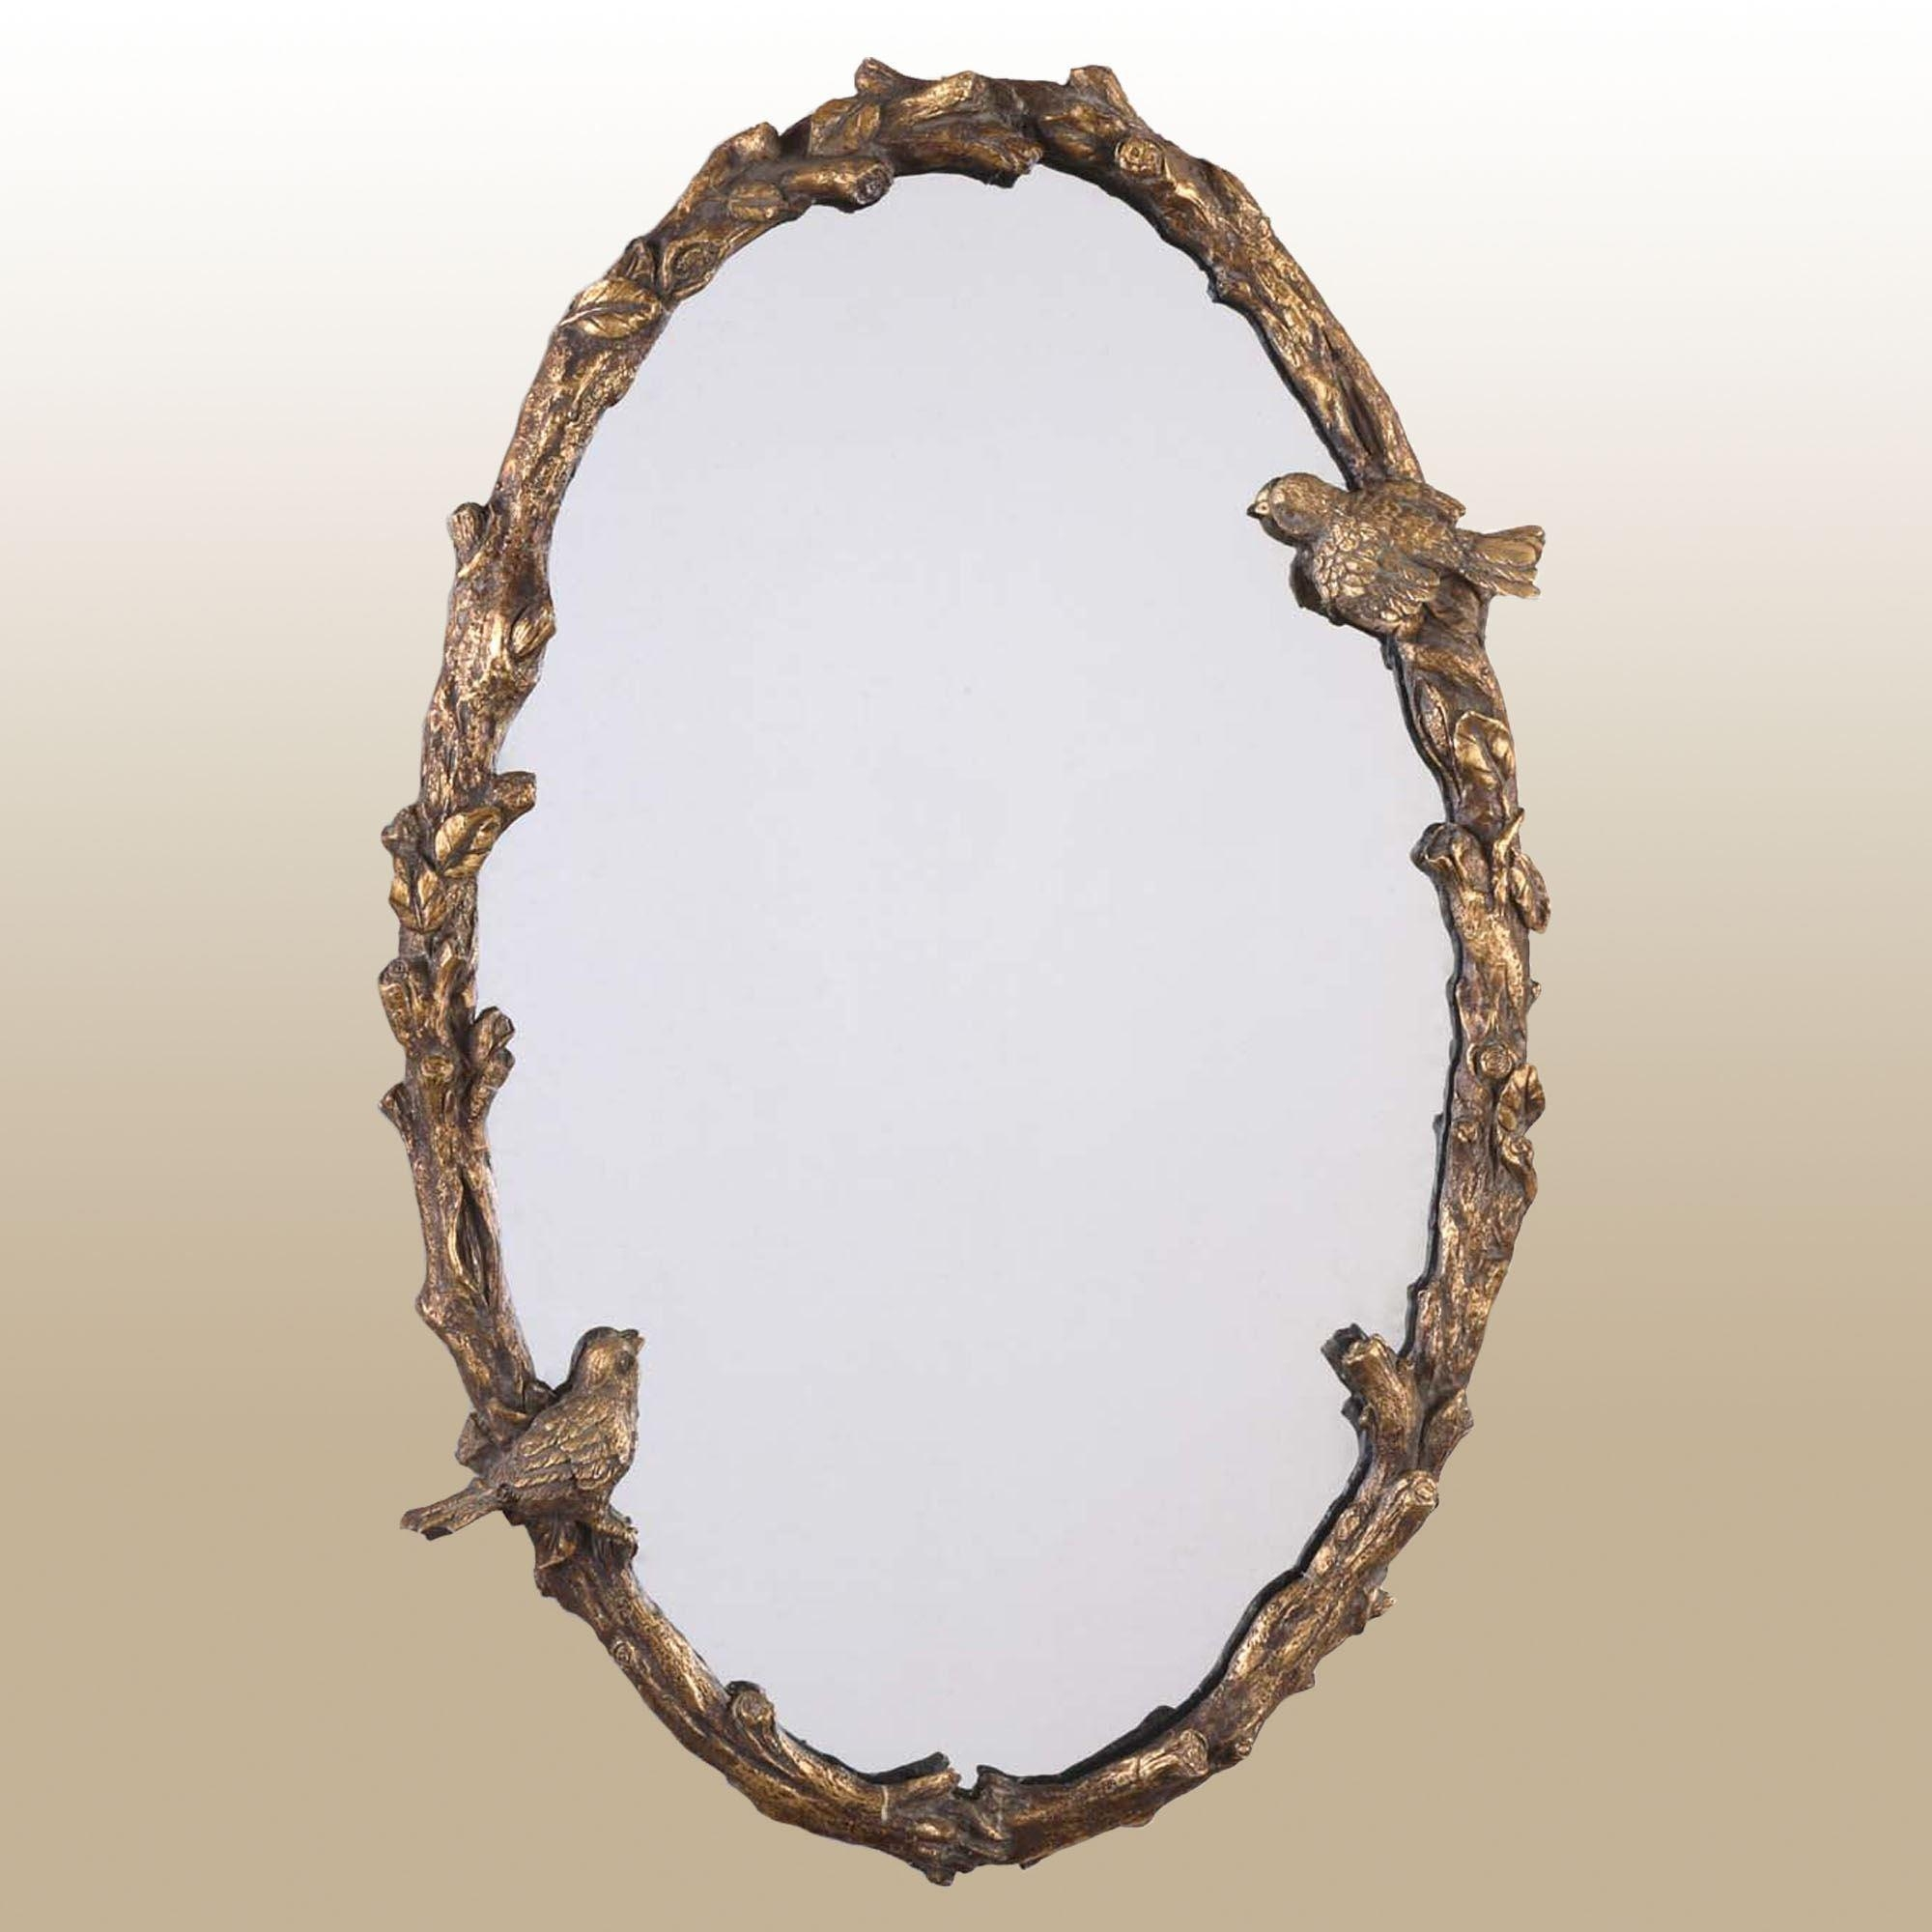 Elegant Birds Oval Wall Mirror Regarding Gold Wall Mirrors (Image 5 of 20)